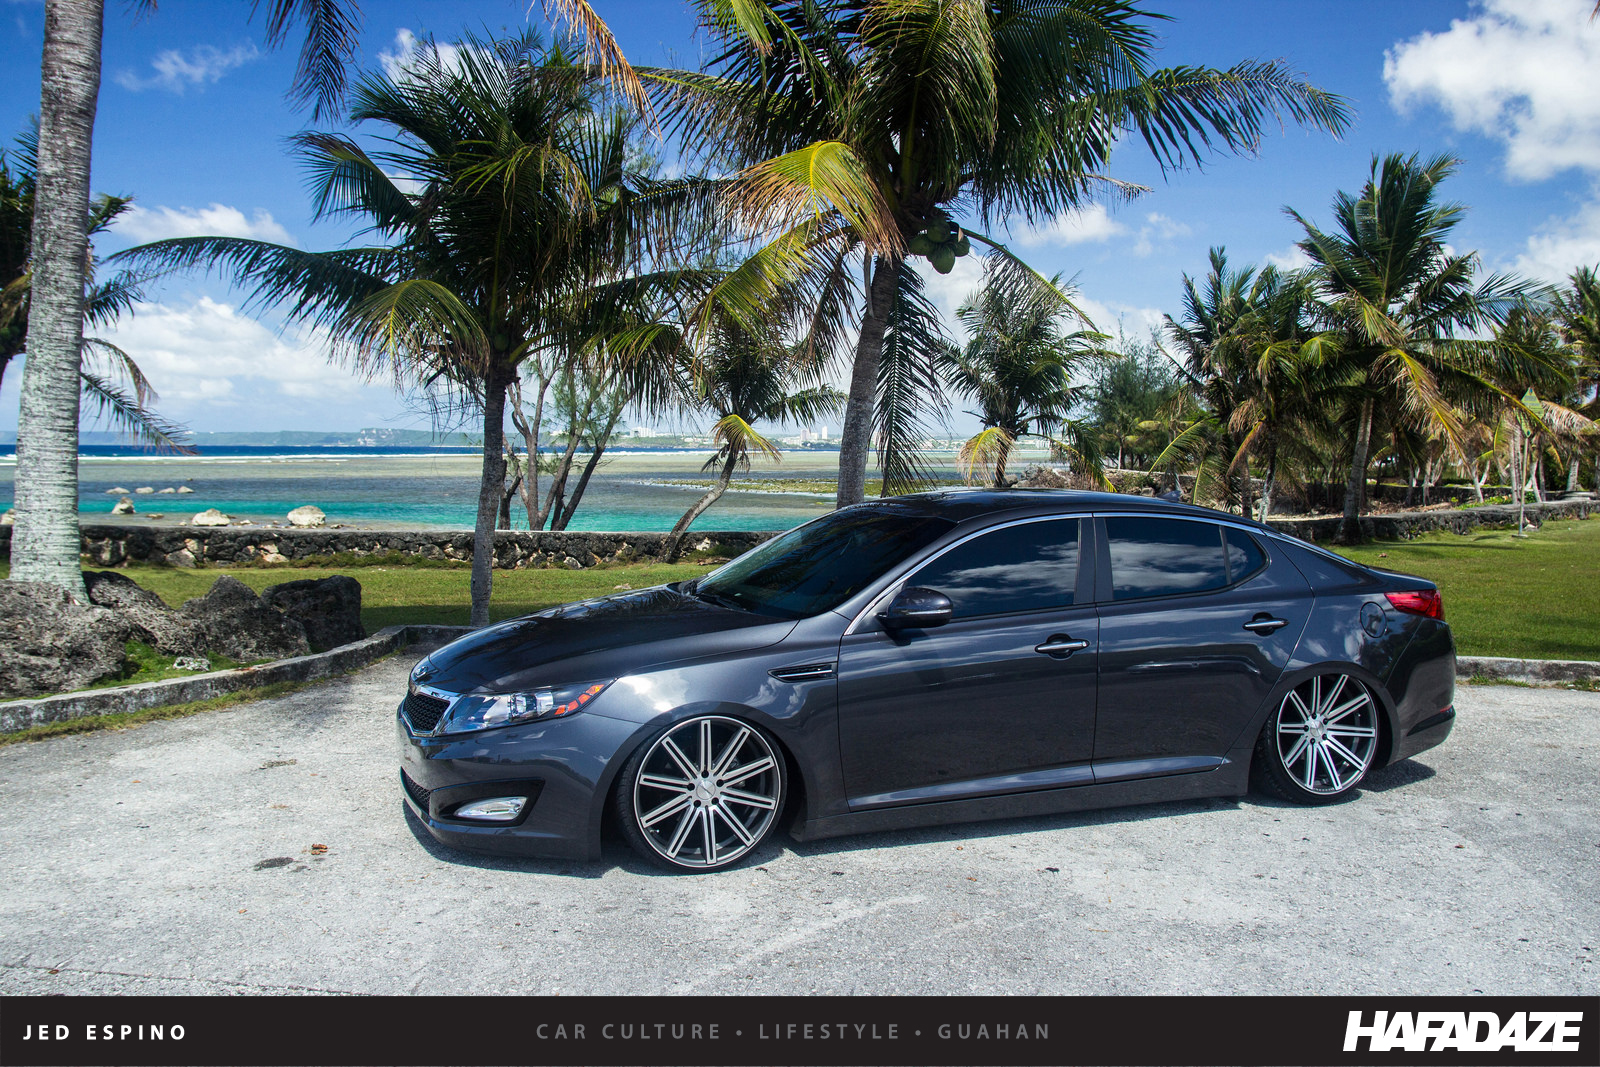 The Worlds First Modified Kia Optima Skyler Taitano Didnt Want To Be Same As Anyone Else Evidenced By His